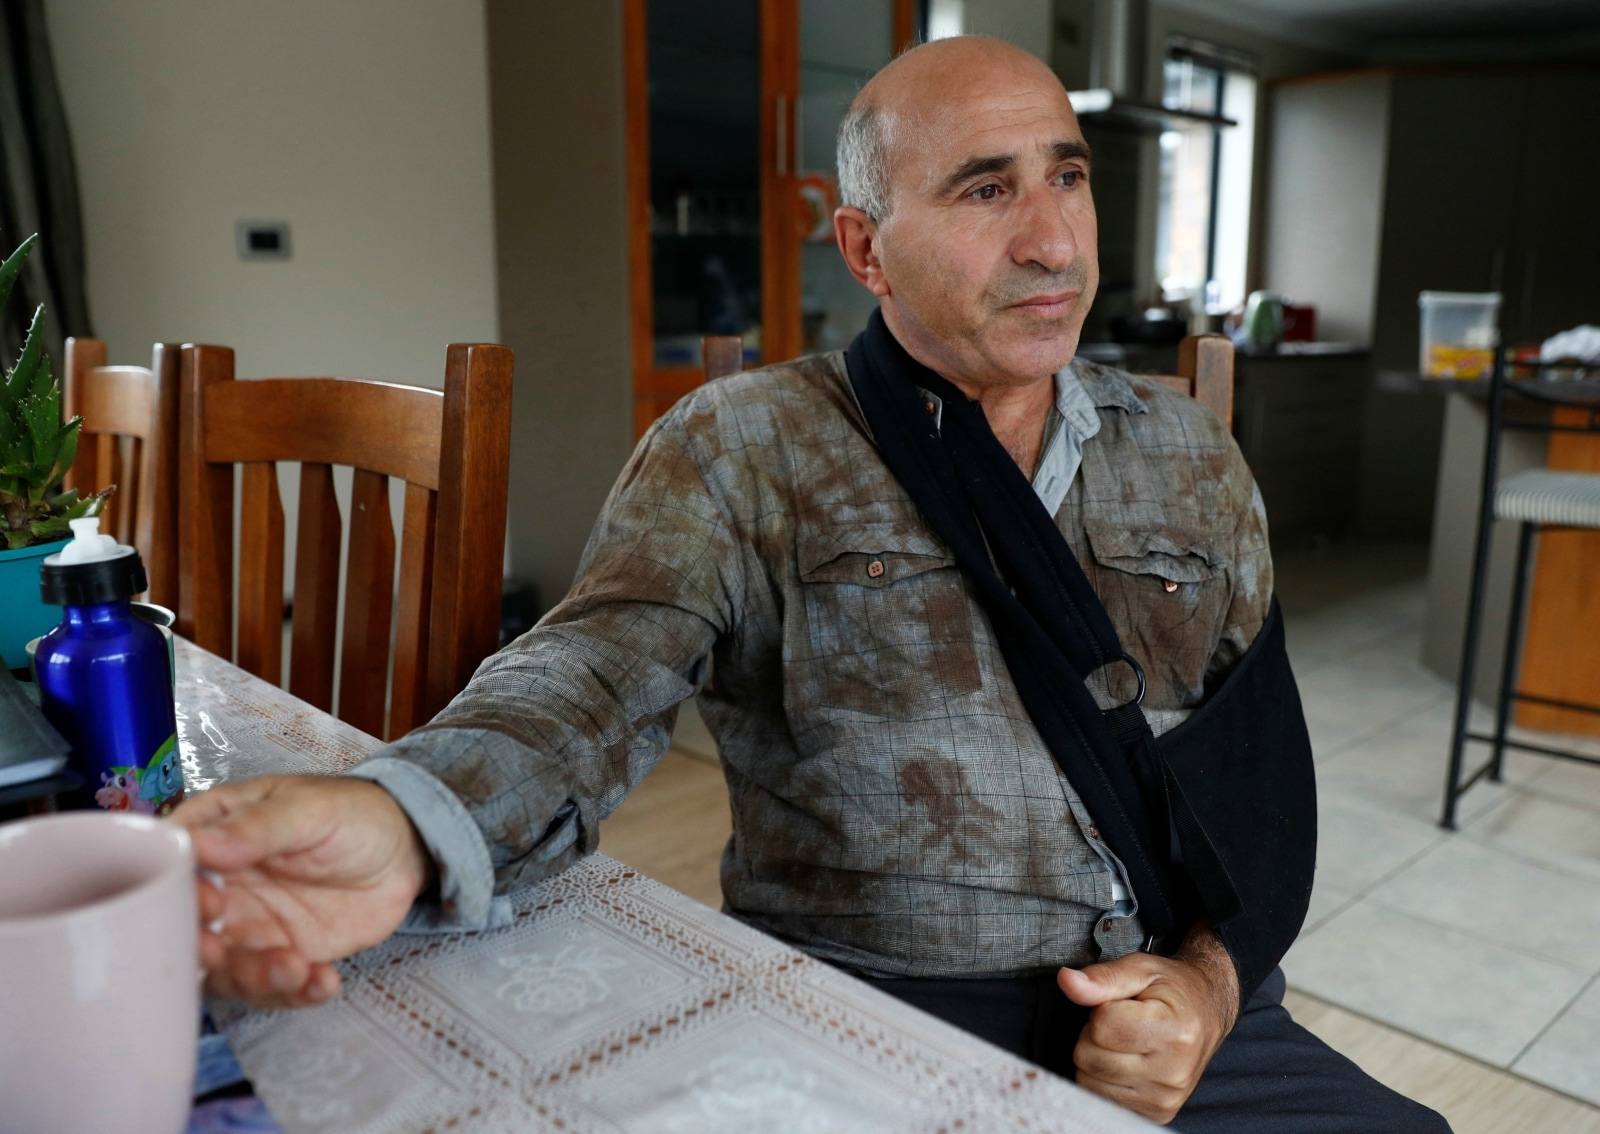 Hazem Mohammed, who migrated from Iraq 41 years ago, the survivor of the Christchurch shootings, speaks about experiences during the attacks, at his home in Christchurch, New Zealand, March 26, 2019. REUTERS/Edgar Su